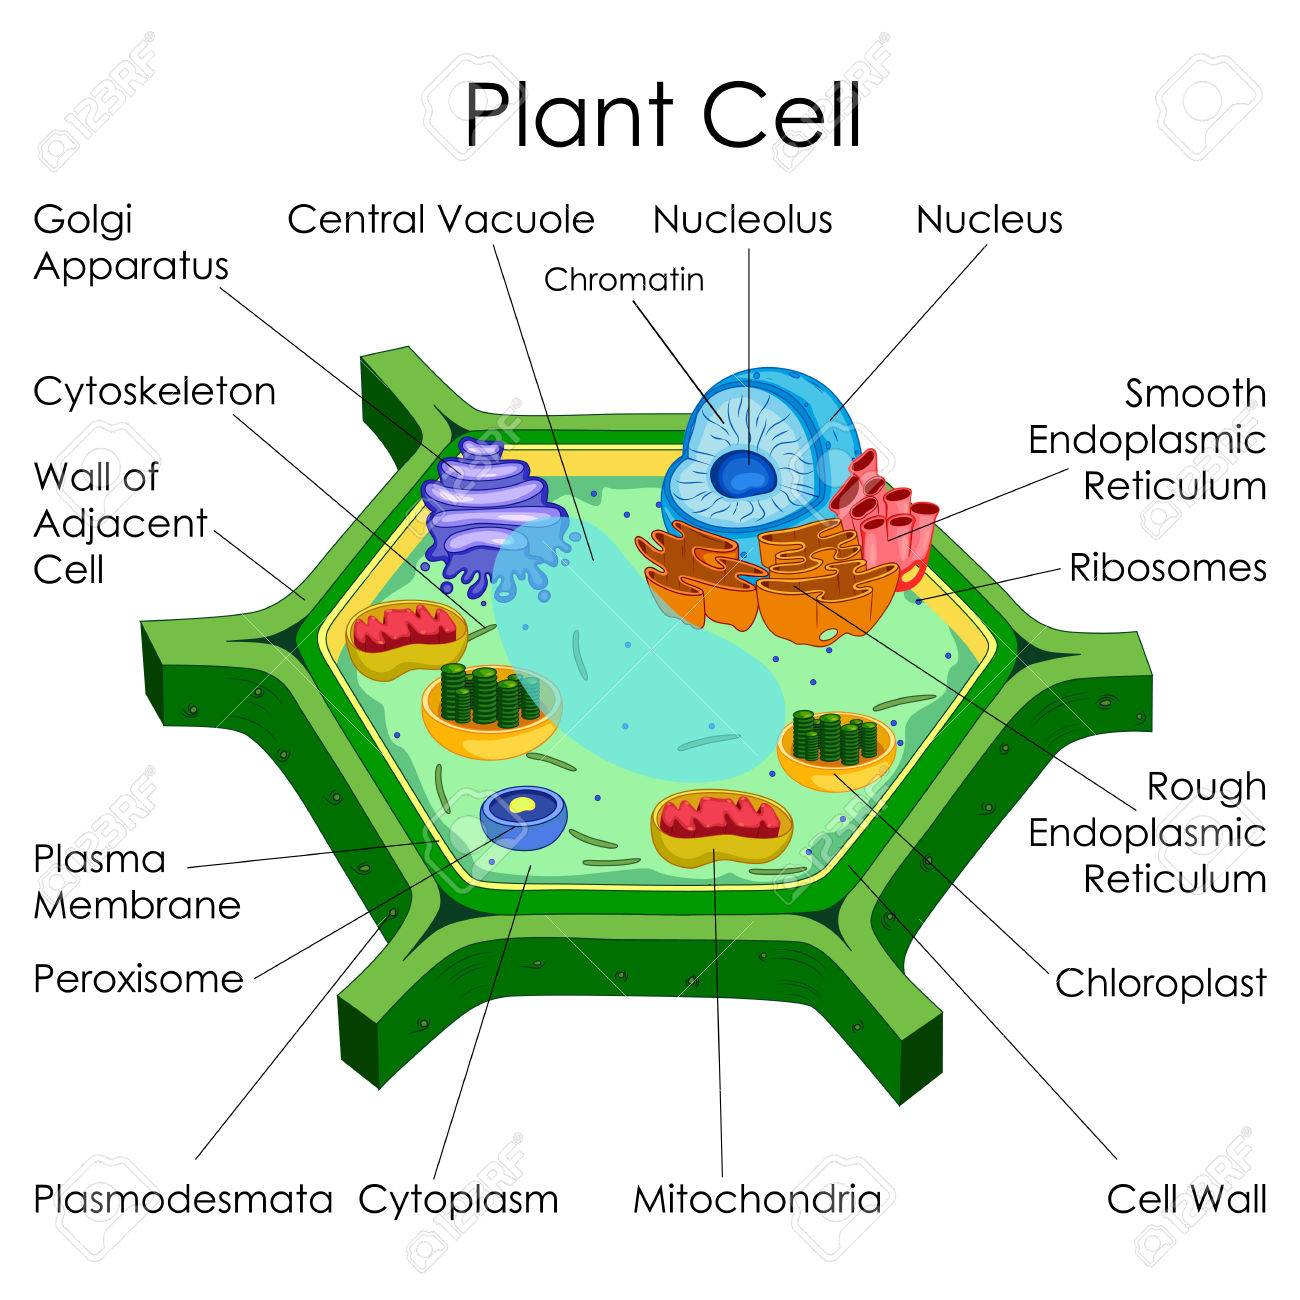 education chart of biology for plant cell diagram stock photo rh 123rf com plant cell diagram 5th grade plant cell diagram labeled